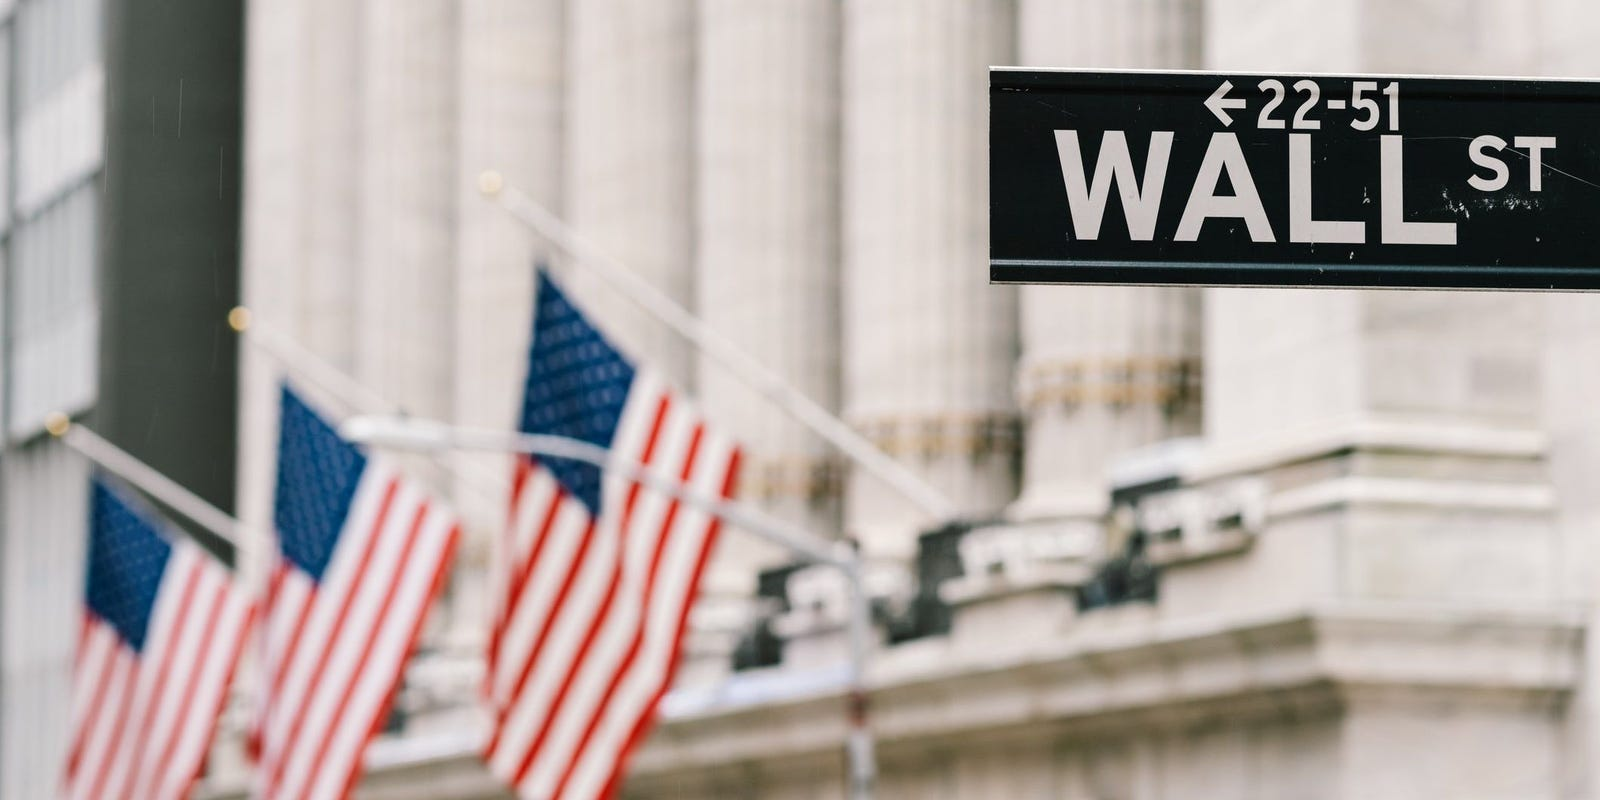 Stocks set to open higher even as jobless claims climb to 3.2M